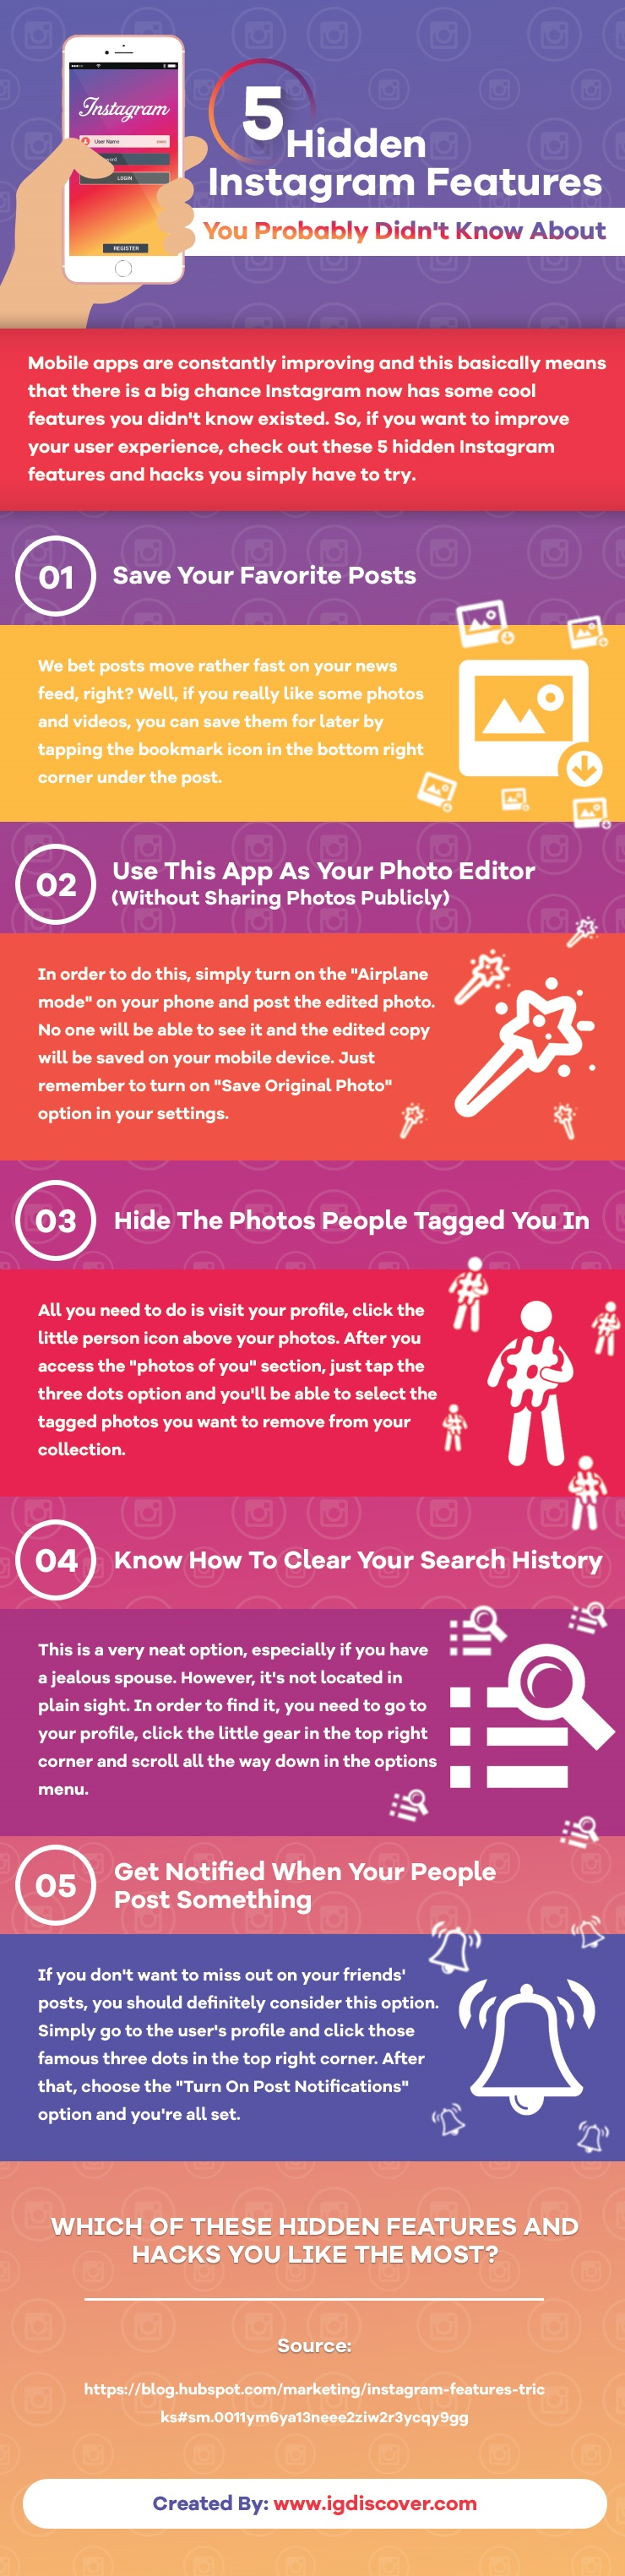 5 Instagram Hacks and Features You Probably Didn't Know About - #infographic